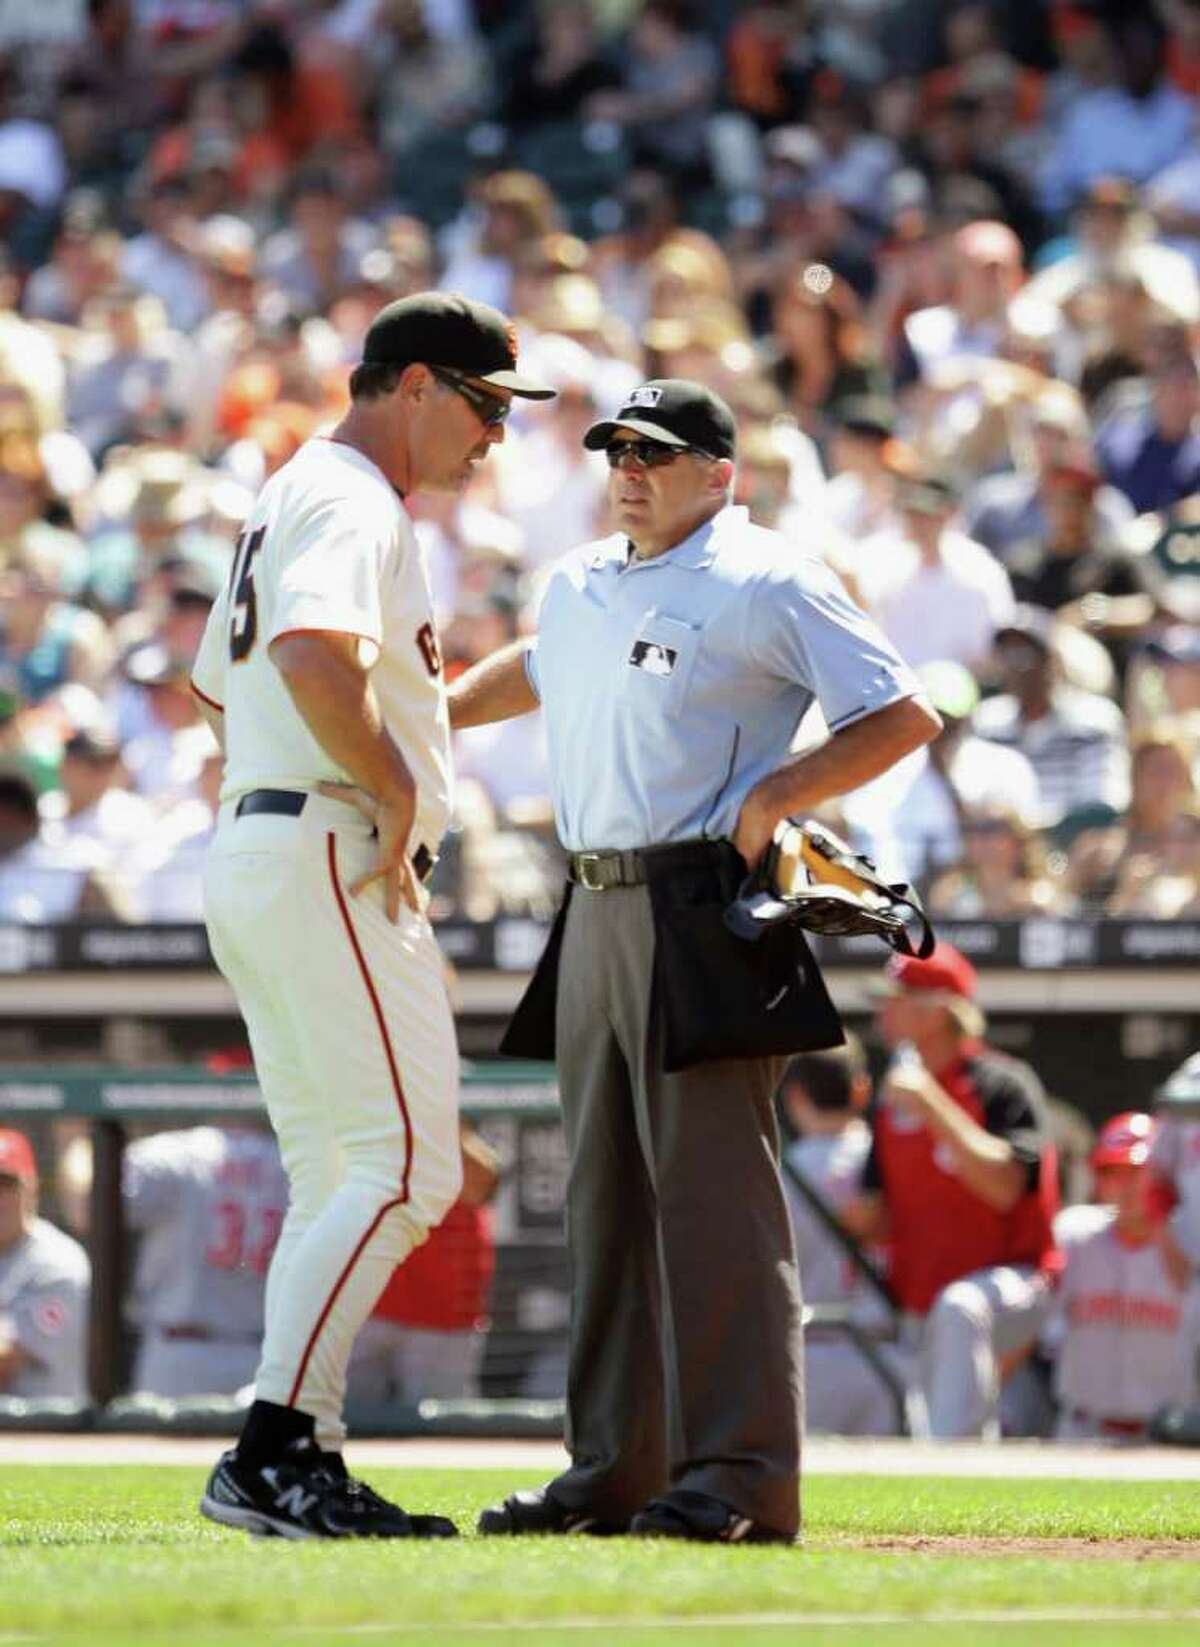 SAN FRANCISCO - AUGUST 25: Manager Bruce Bochy of the San Francisco Giants argues a call with umpire John Hirschbeck after Brandon Phillips #4 of the Cincinnati Reds was hit by a pitch in the fifth inning at AT&T Park on August 25, 2010 in San Francisco, California. (Photo by Ezra Shaw/Getty Images) *** Local Caption *** John Hirschbeck;Bruce Bochy